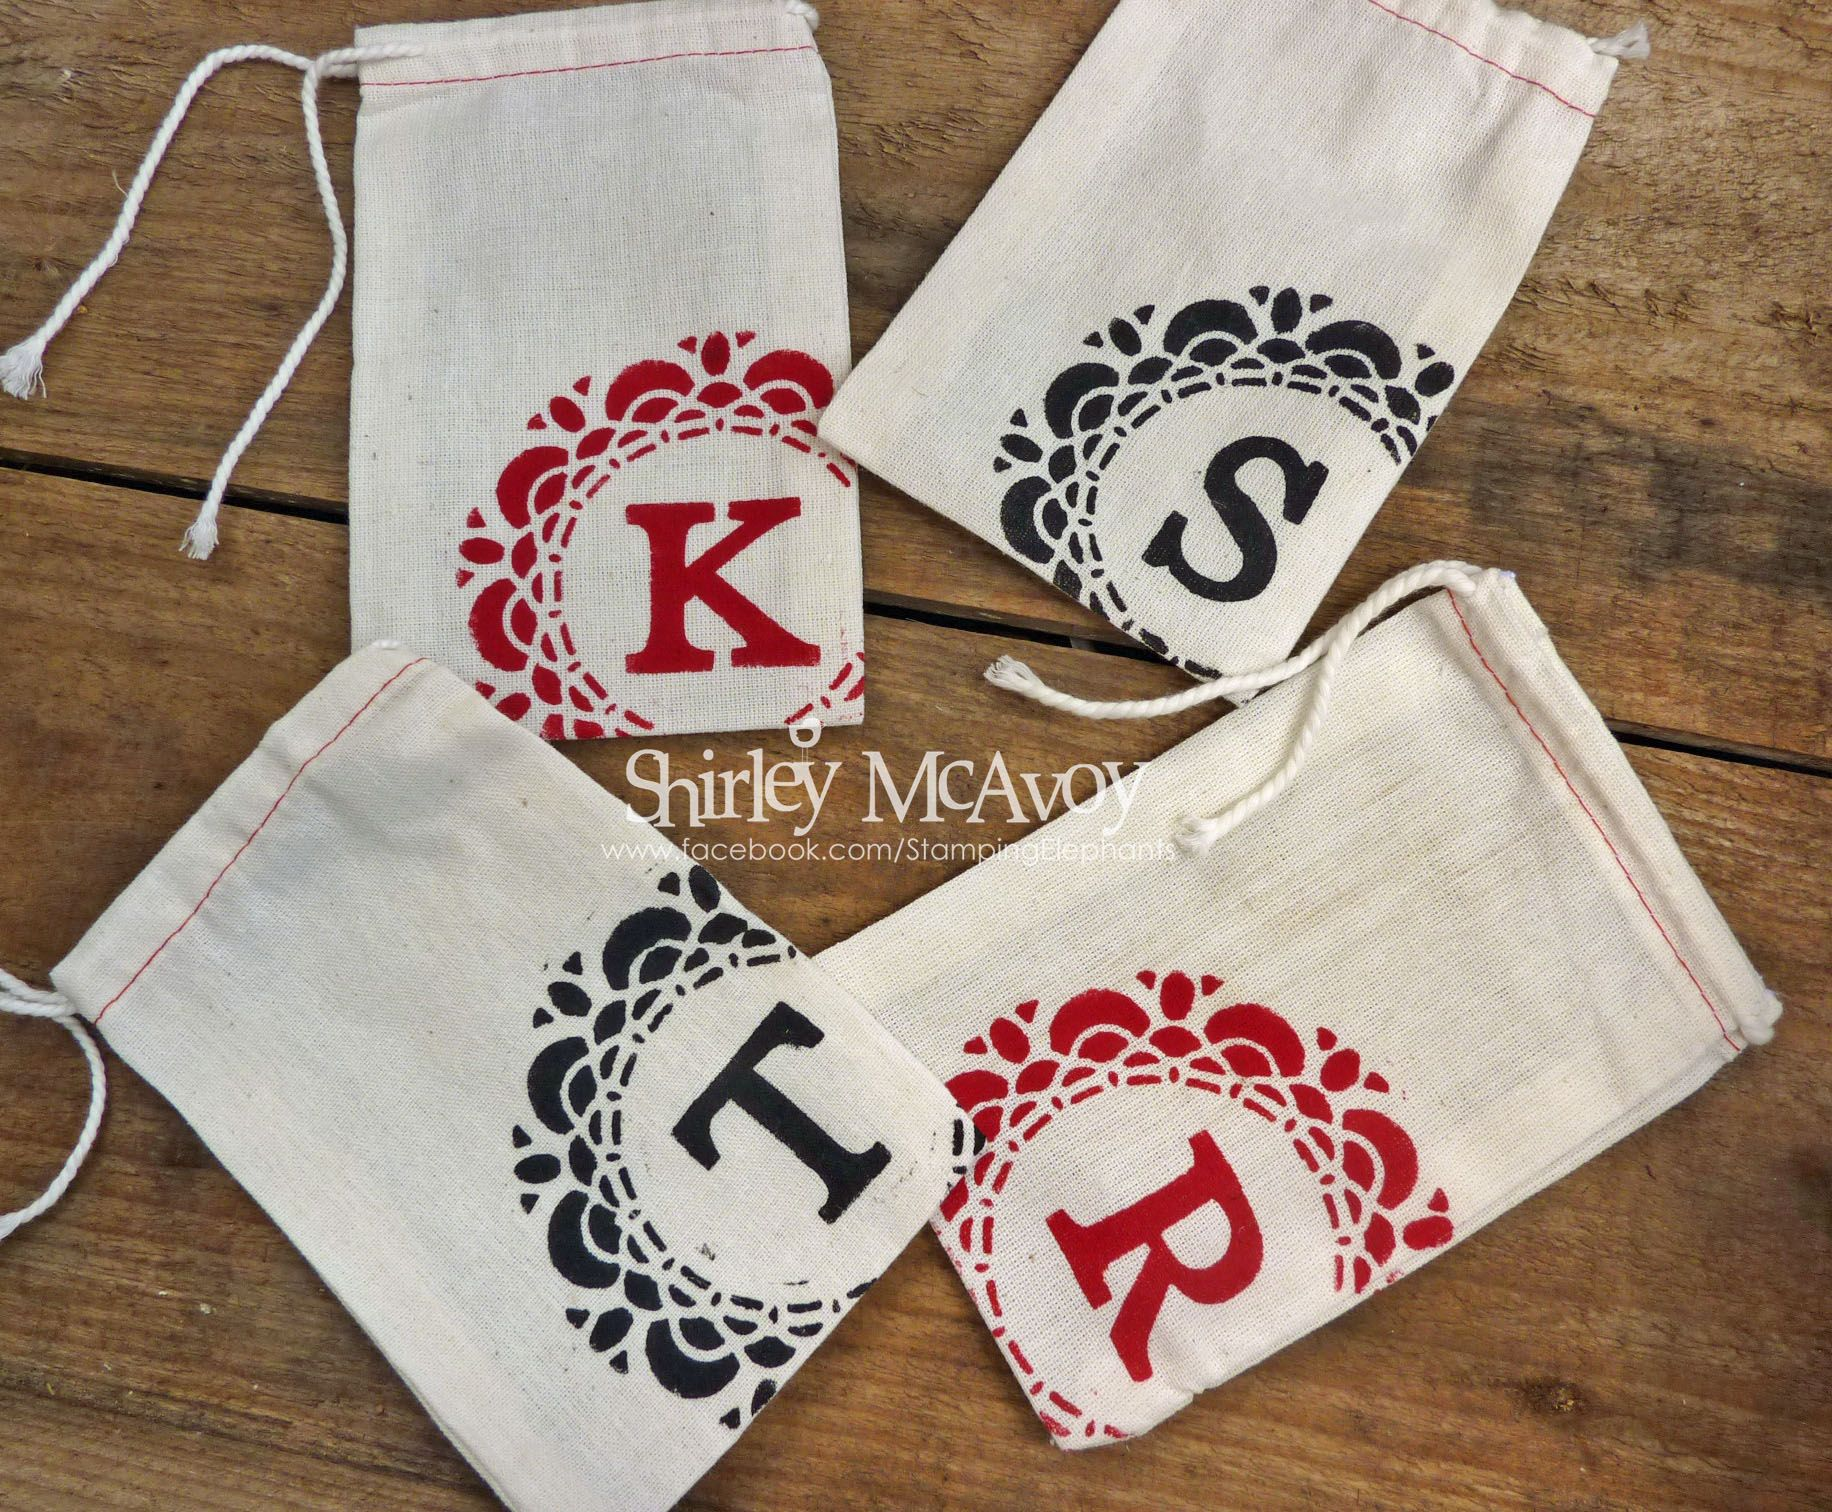 Doily Gift Bags by Shirley McAvoy, Stamping Elephants